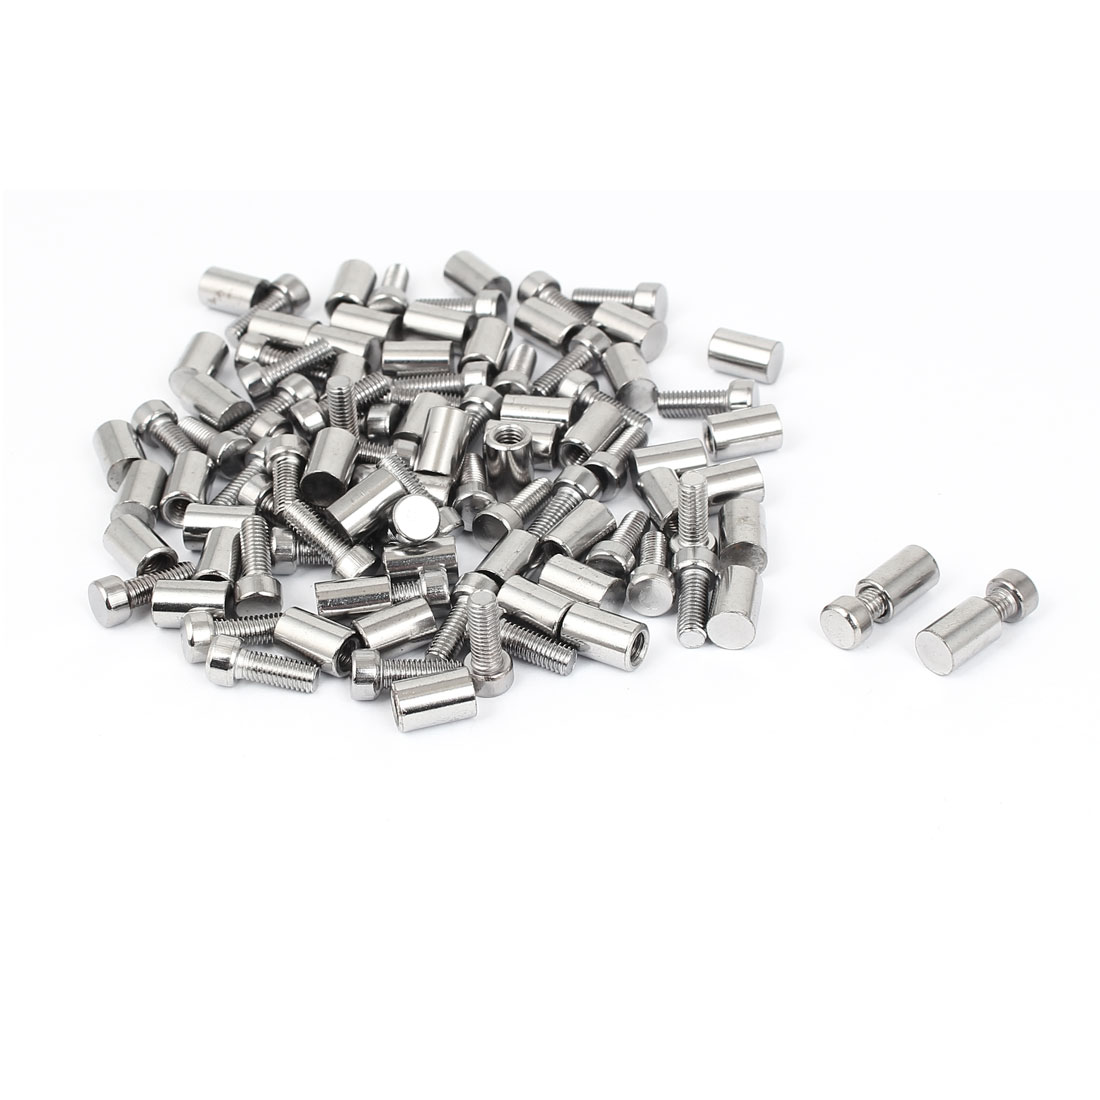 8mm x 20mm Stainless Steel Standoff Pins Screw Glass Picture Frame Hanger 50 Pcs